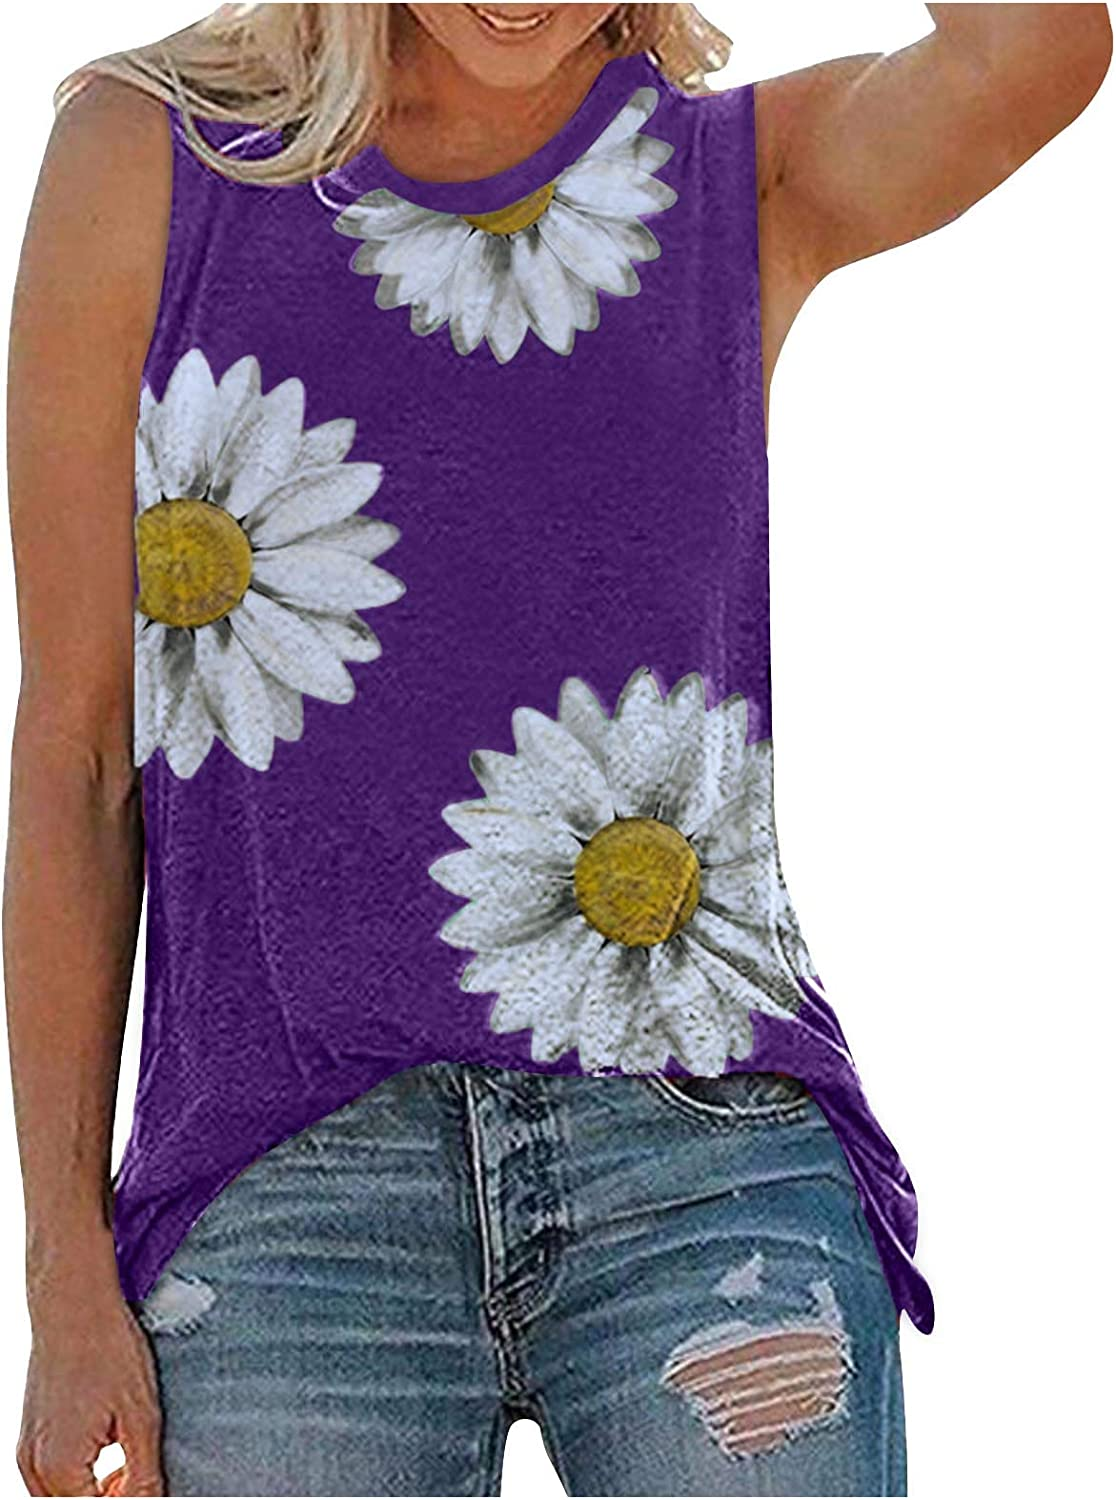 Gerichy Womens Tank Tops, Womens Tops Summer Loose Fit Plus Size Sleeveless Tank Tops Casual Graphic Tee Shirts